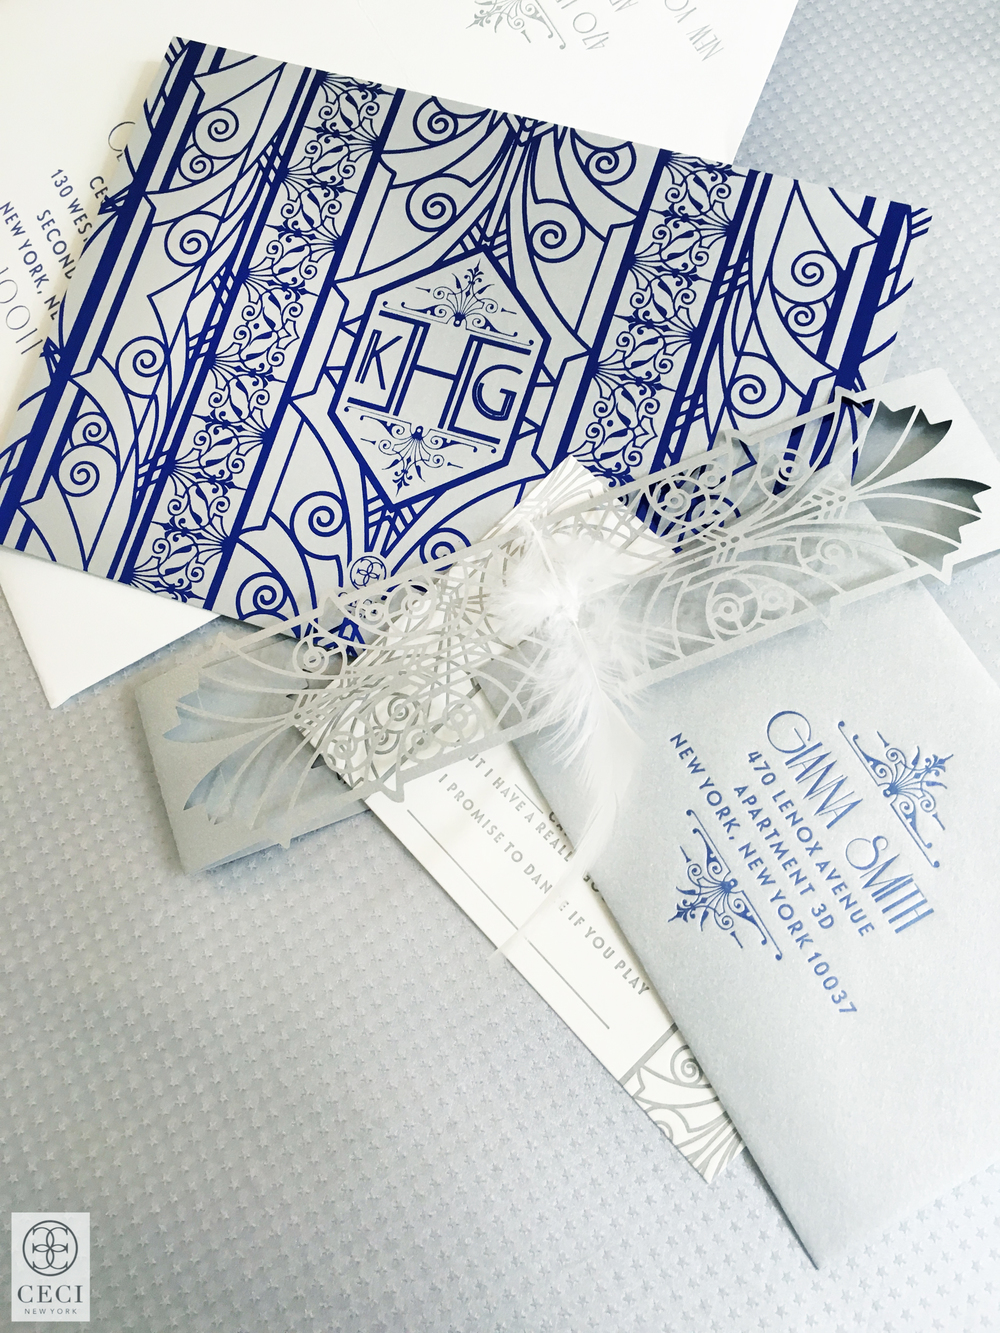 Ceci_New_York_New_Jersey_Invitations_Wedding_New_York_Elegance_Silver_Blue_Letterpress_Deco_Classic_Foil_Stamping_Custom_Couture_Personalized-33.jpg